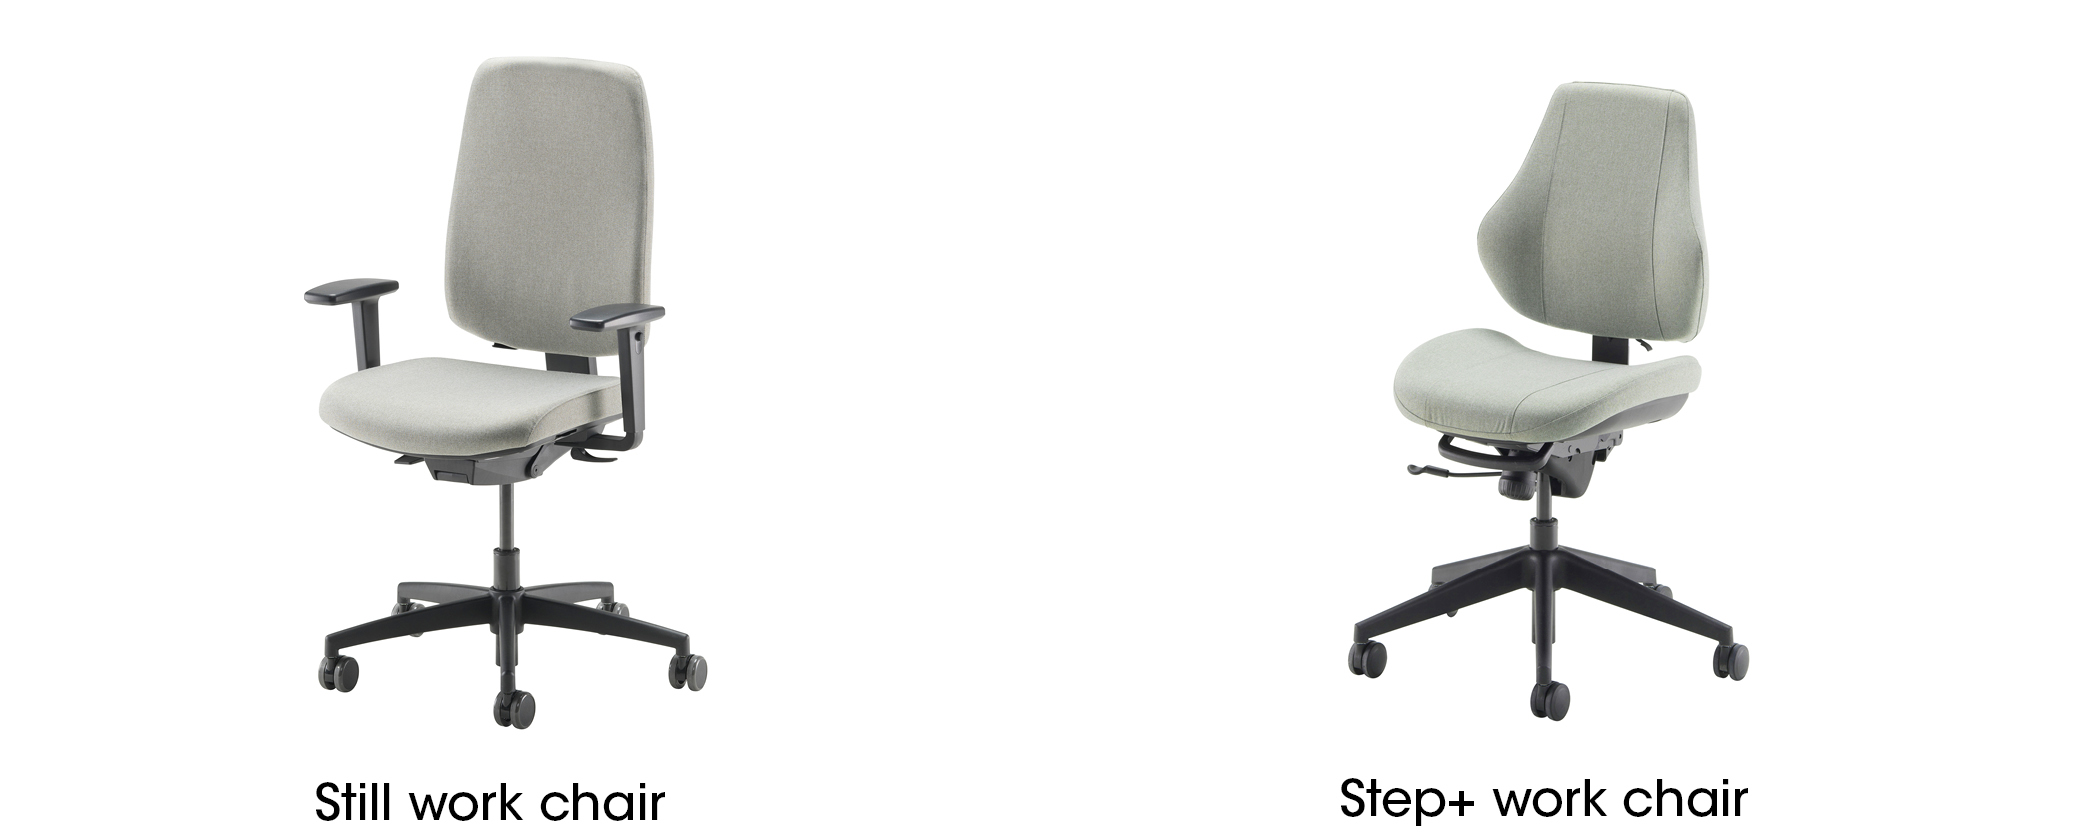 Still and Step+ work chairs